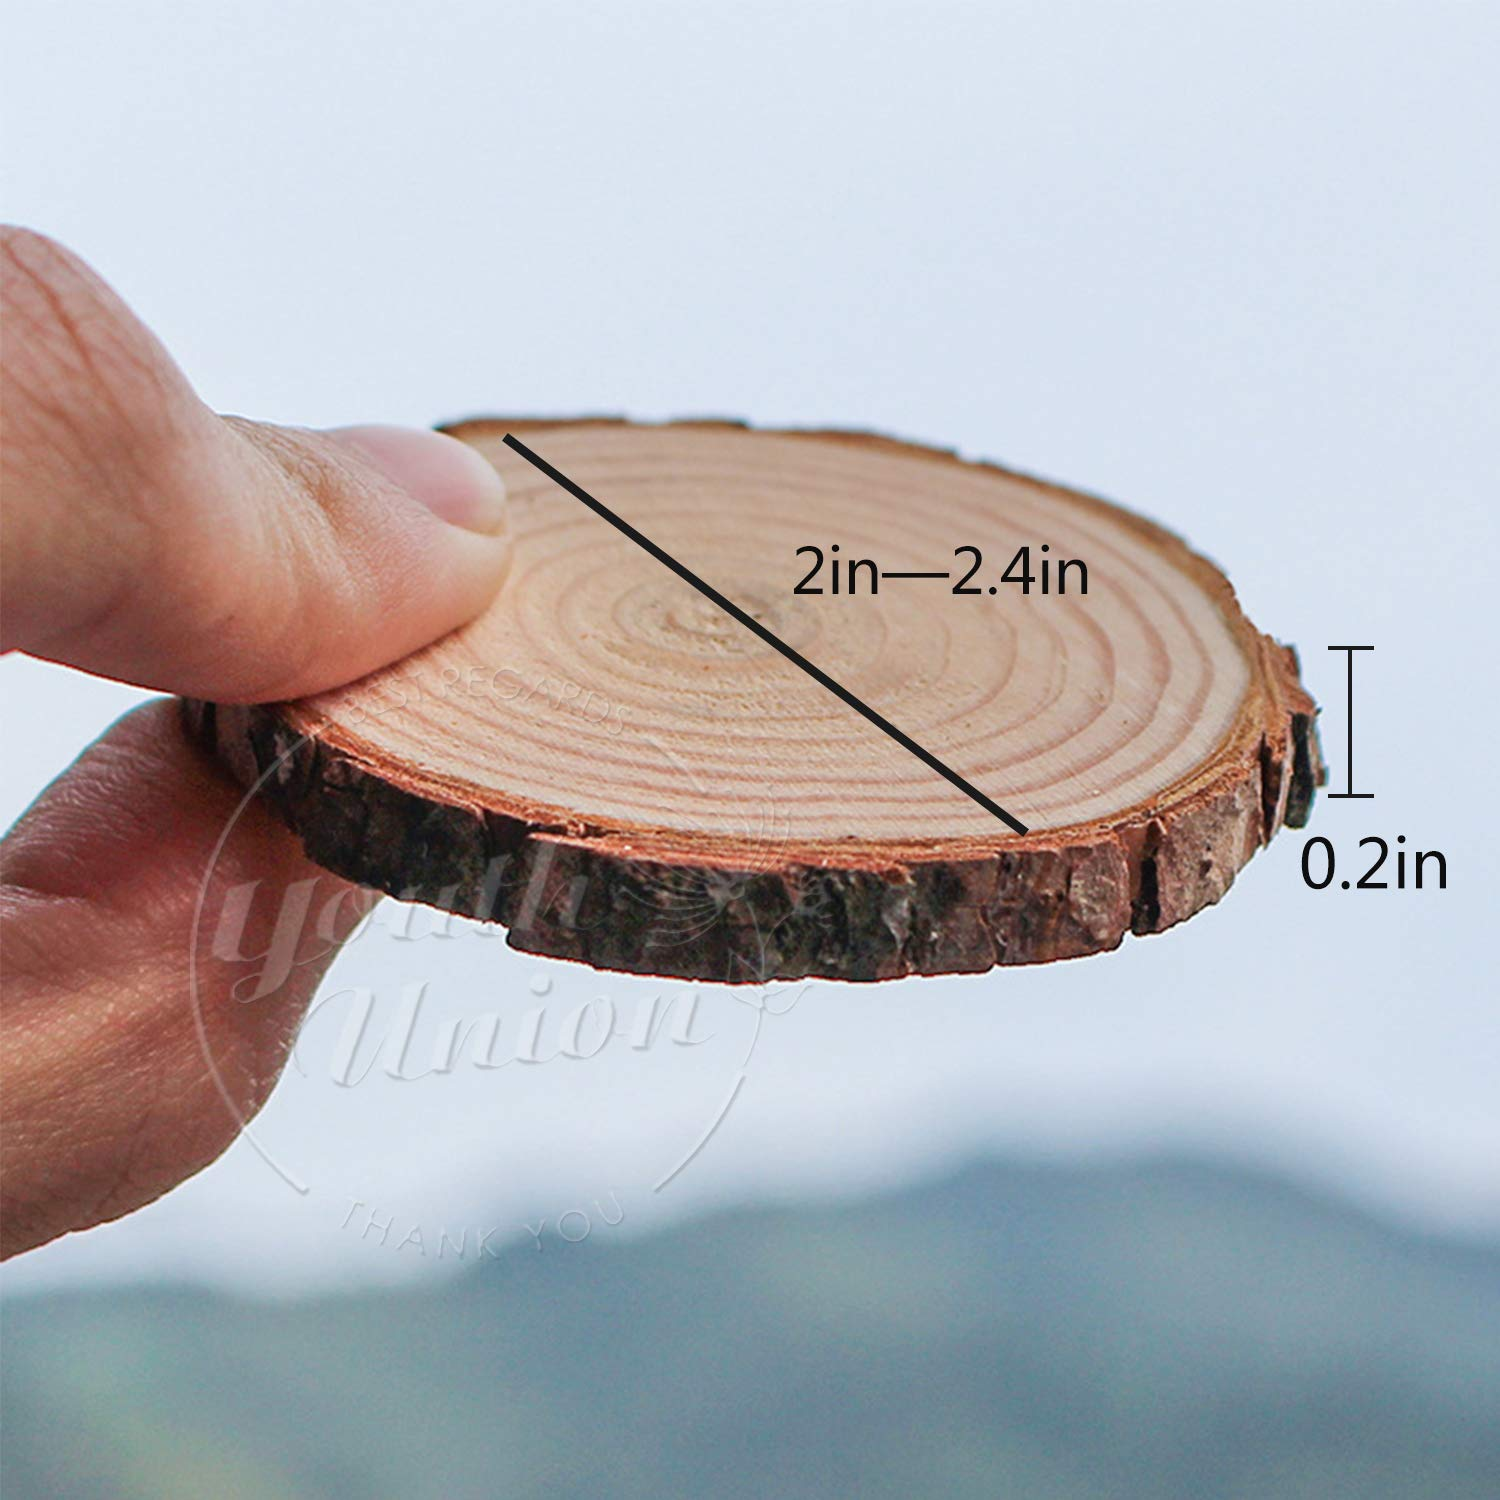 YOUTH UNION 40Pcs 2-2.4 Unfinished Natural Wood Slices Craft Wood Kit Unfinished Predrilled with Hole Wooden Circles for Arts and Crafts Christmas Ornaments DIY Crafts 40Pcs 2-2.4